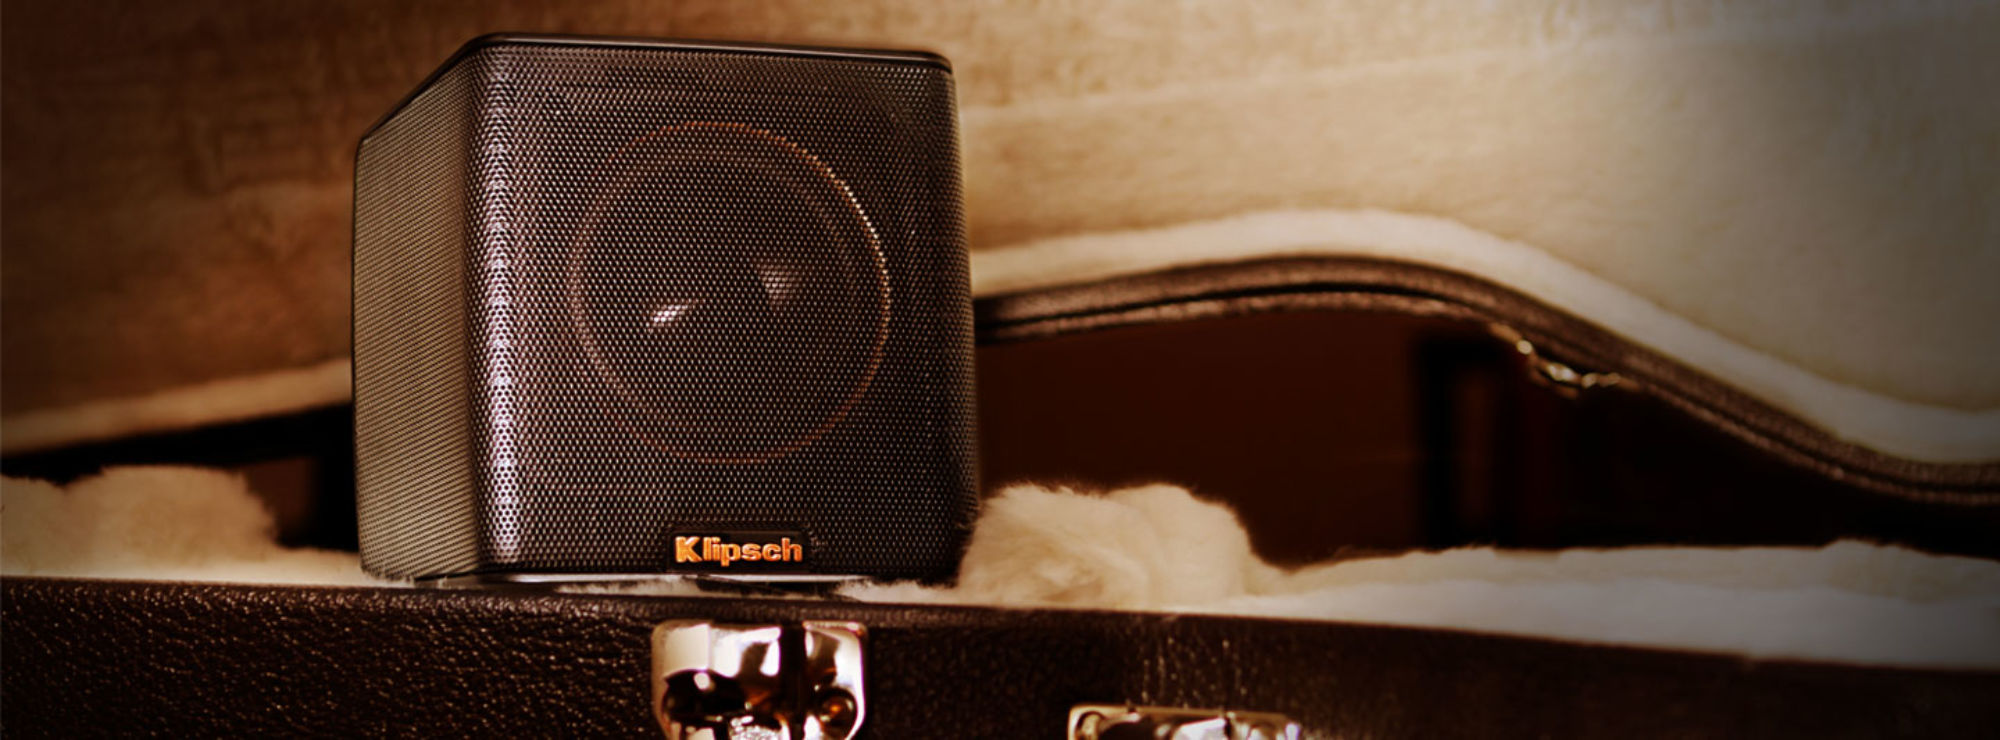 Klipsch Groove in a guitar case